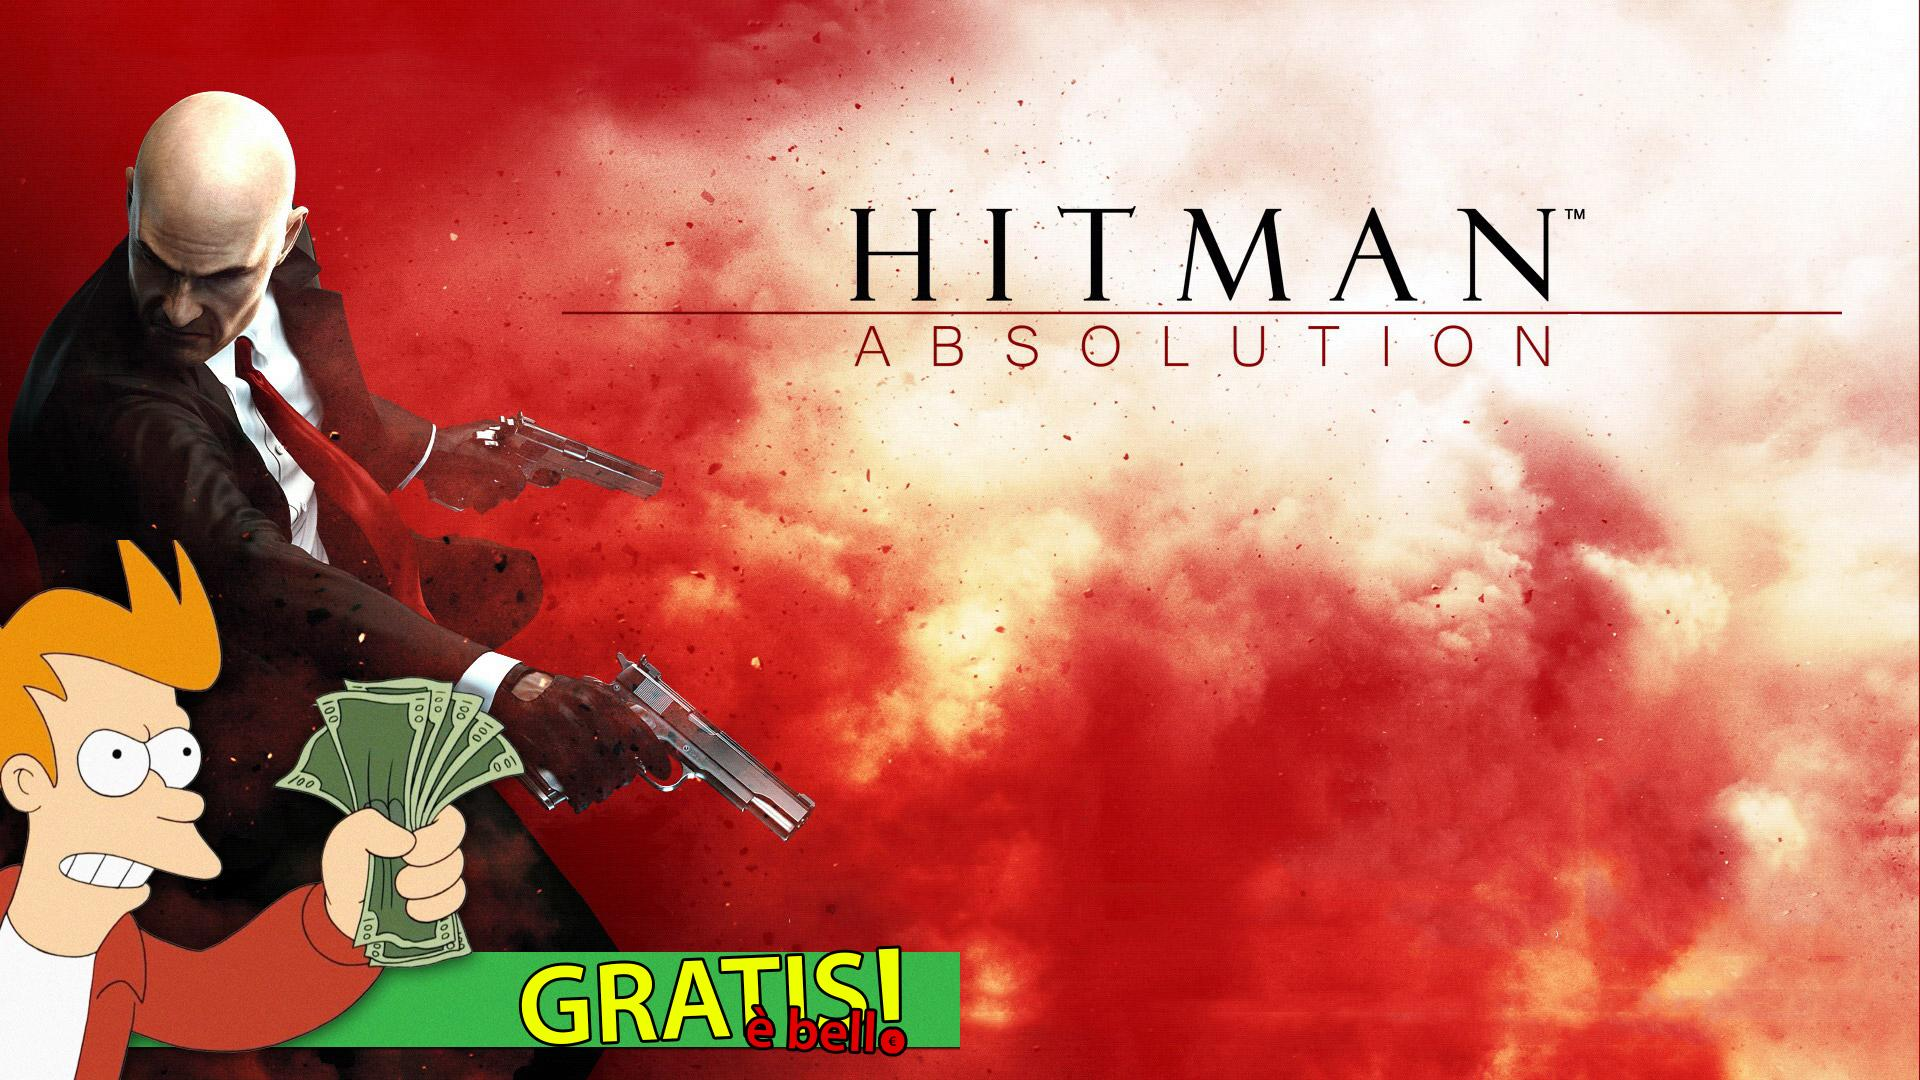 Free Is Beautiful Hitman Absolution Let S Talk About Video Games